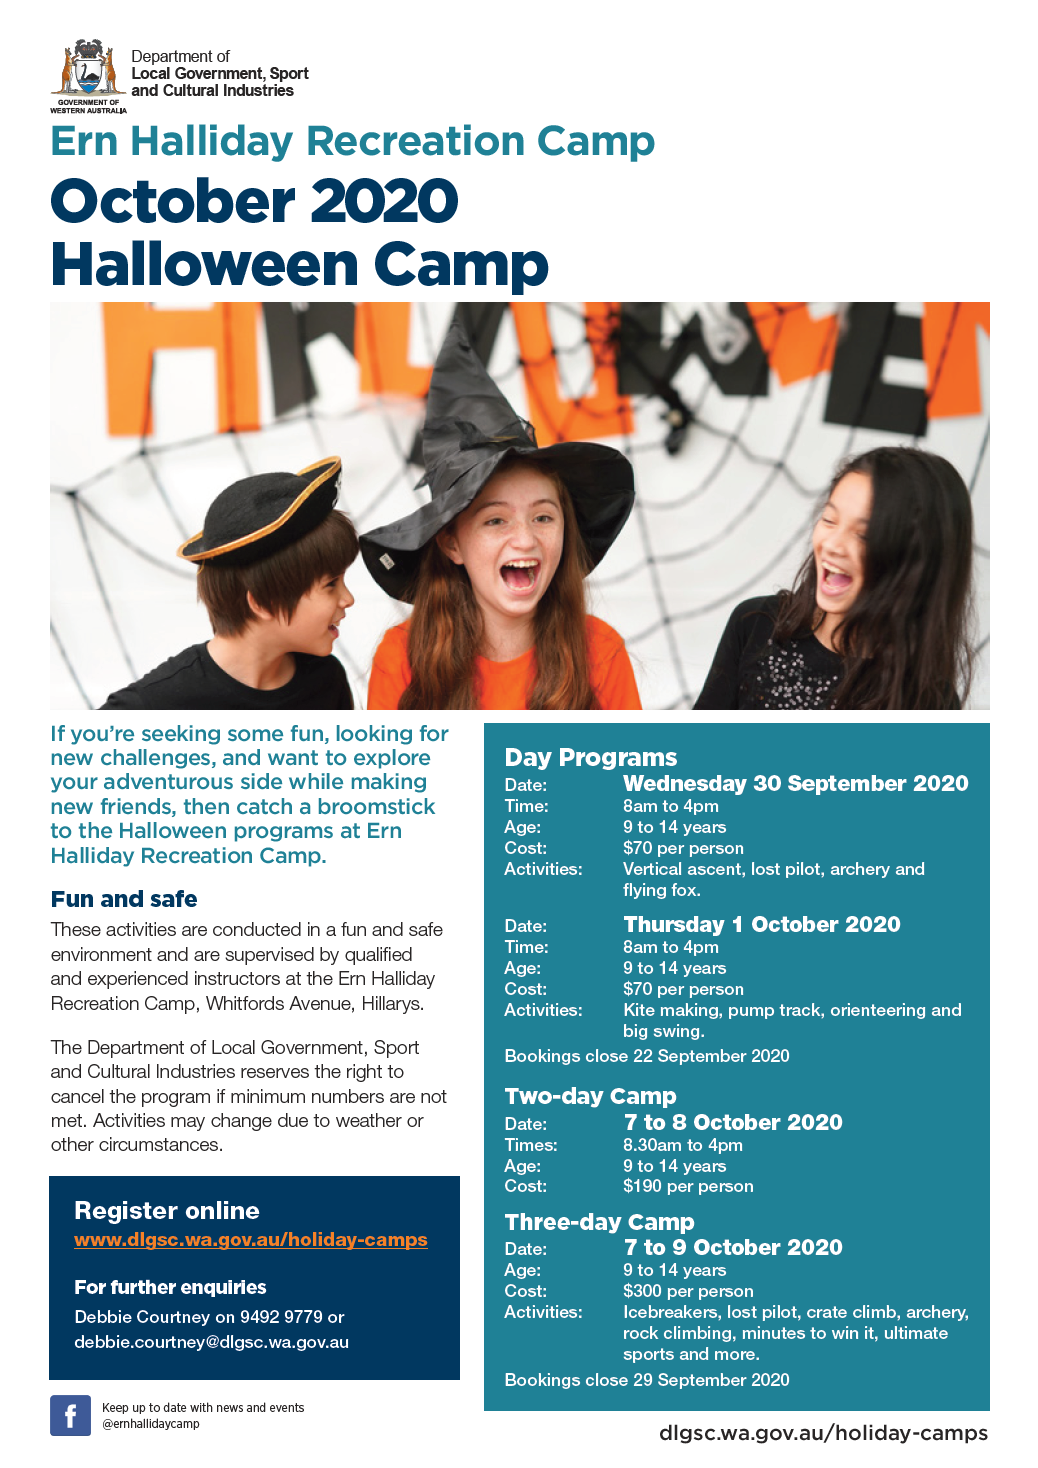 Ern Halliday Halloween Camp October 2020 flyer